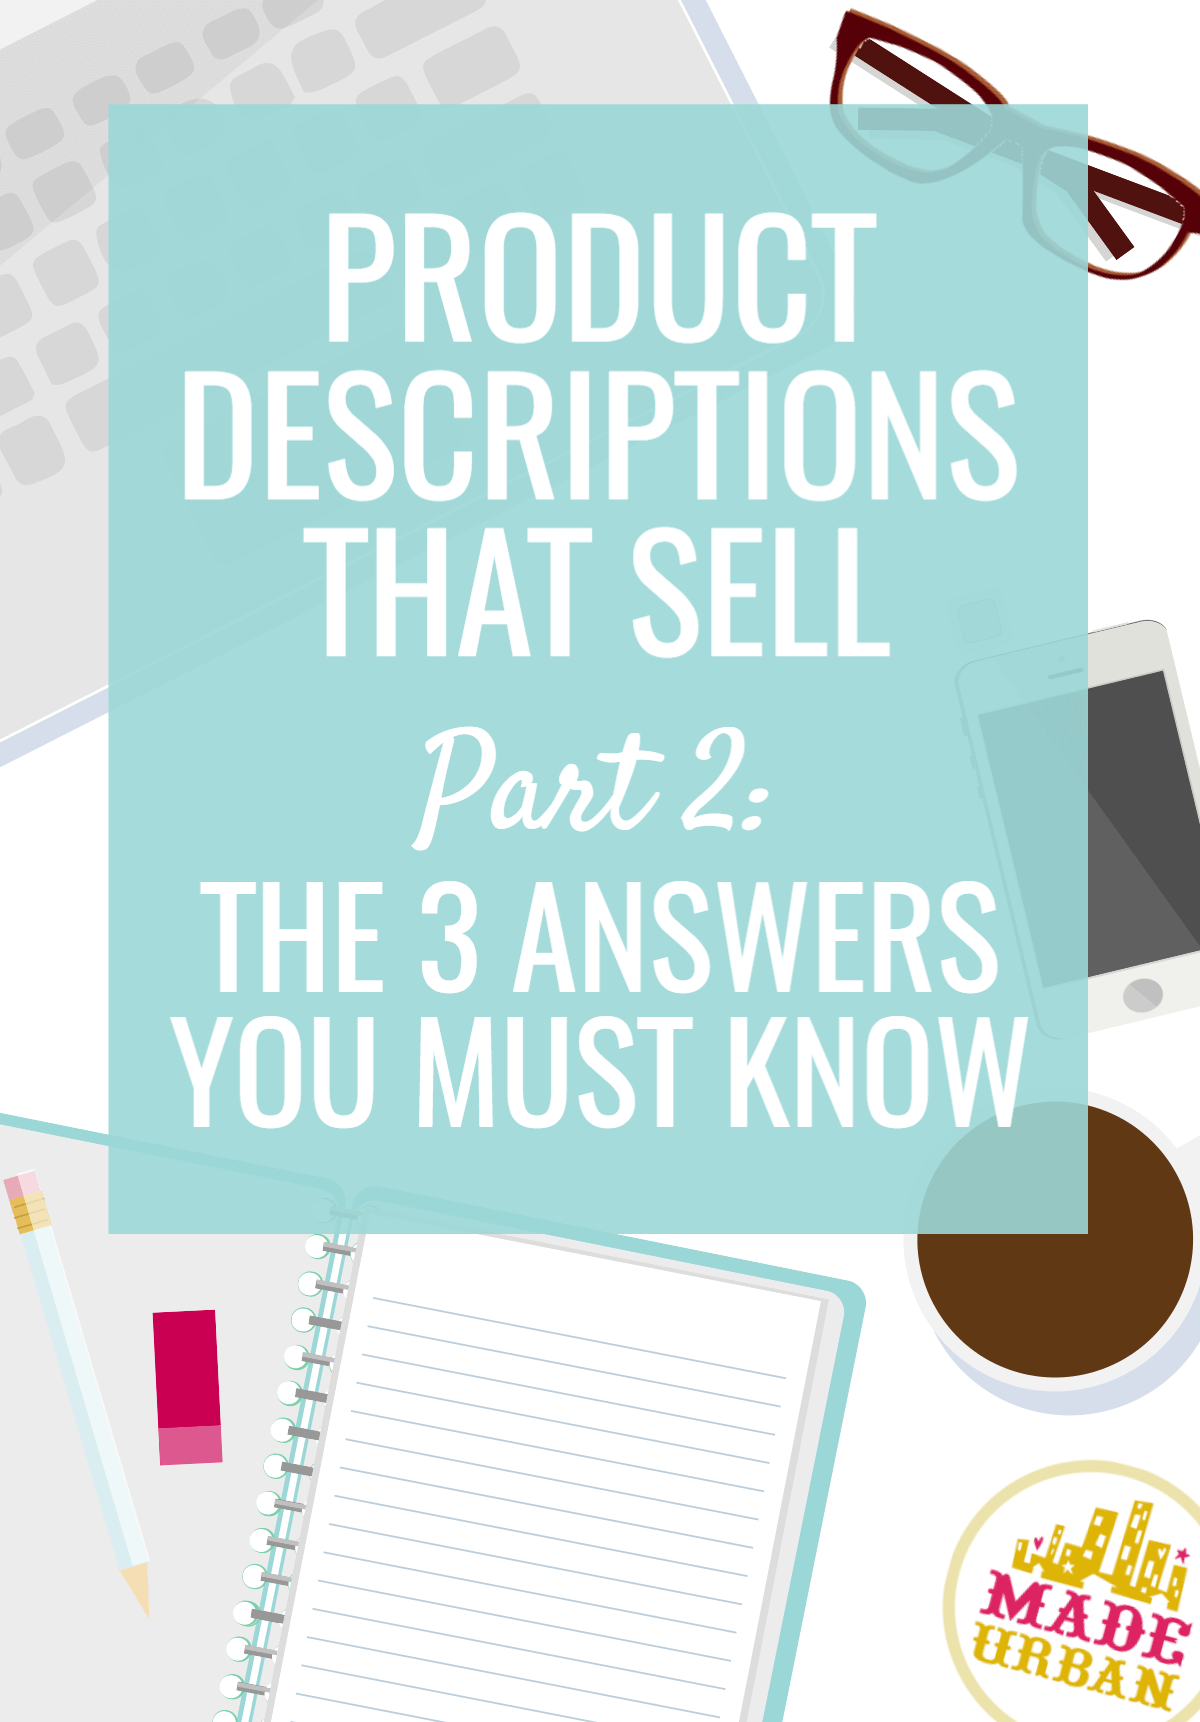 d39dd8ab74b5a Product Descriptions that Sell: 3 Answers you Must Know - Made Urban